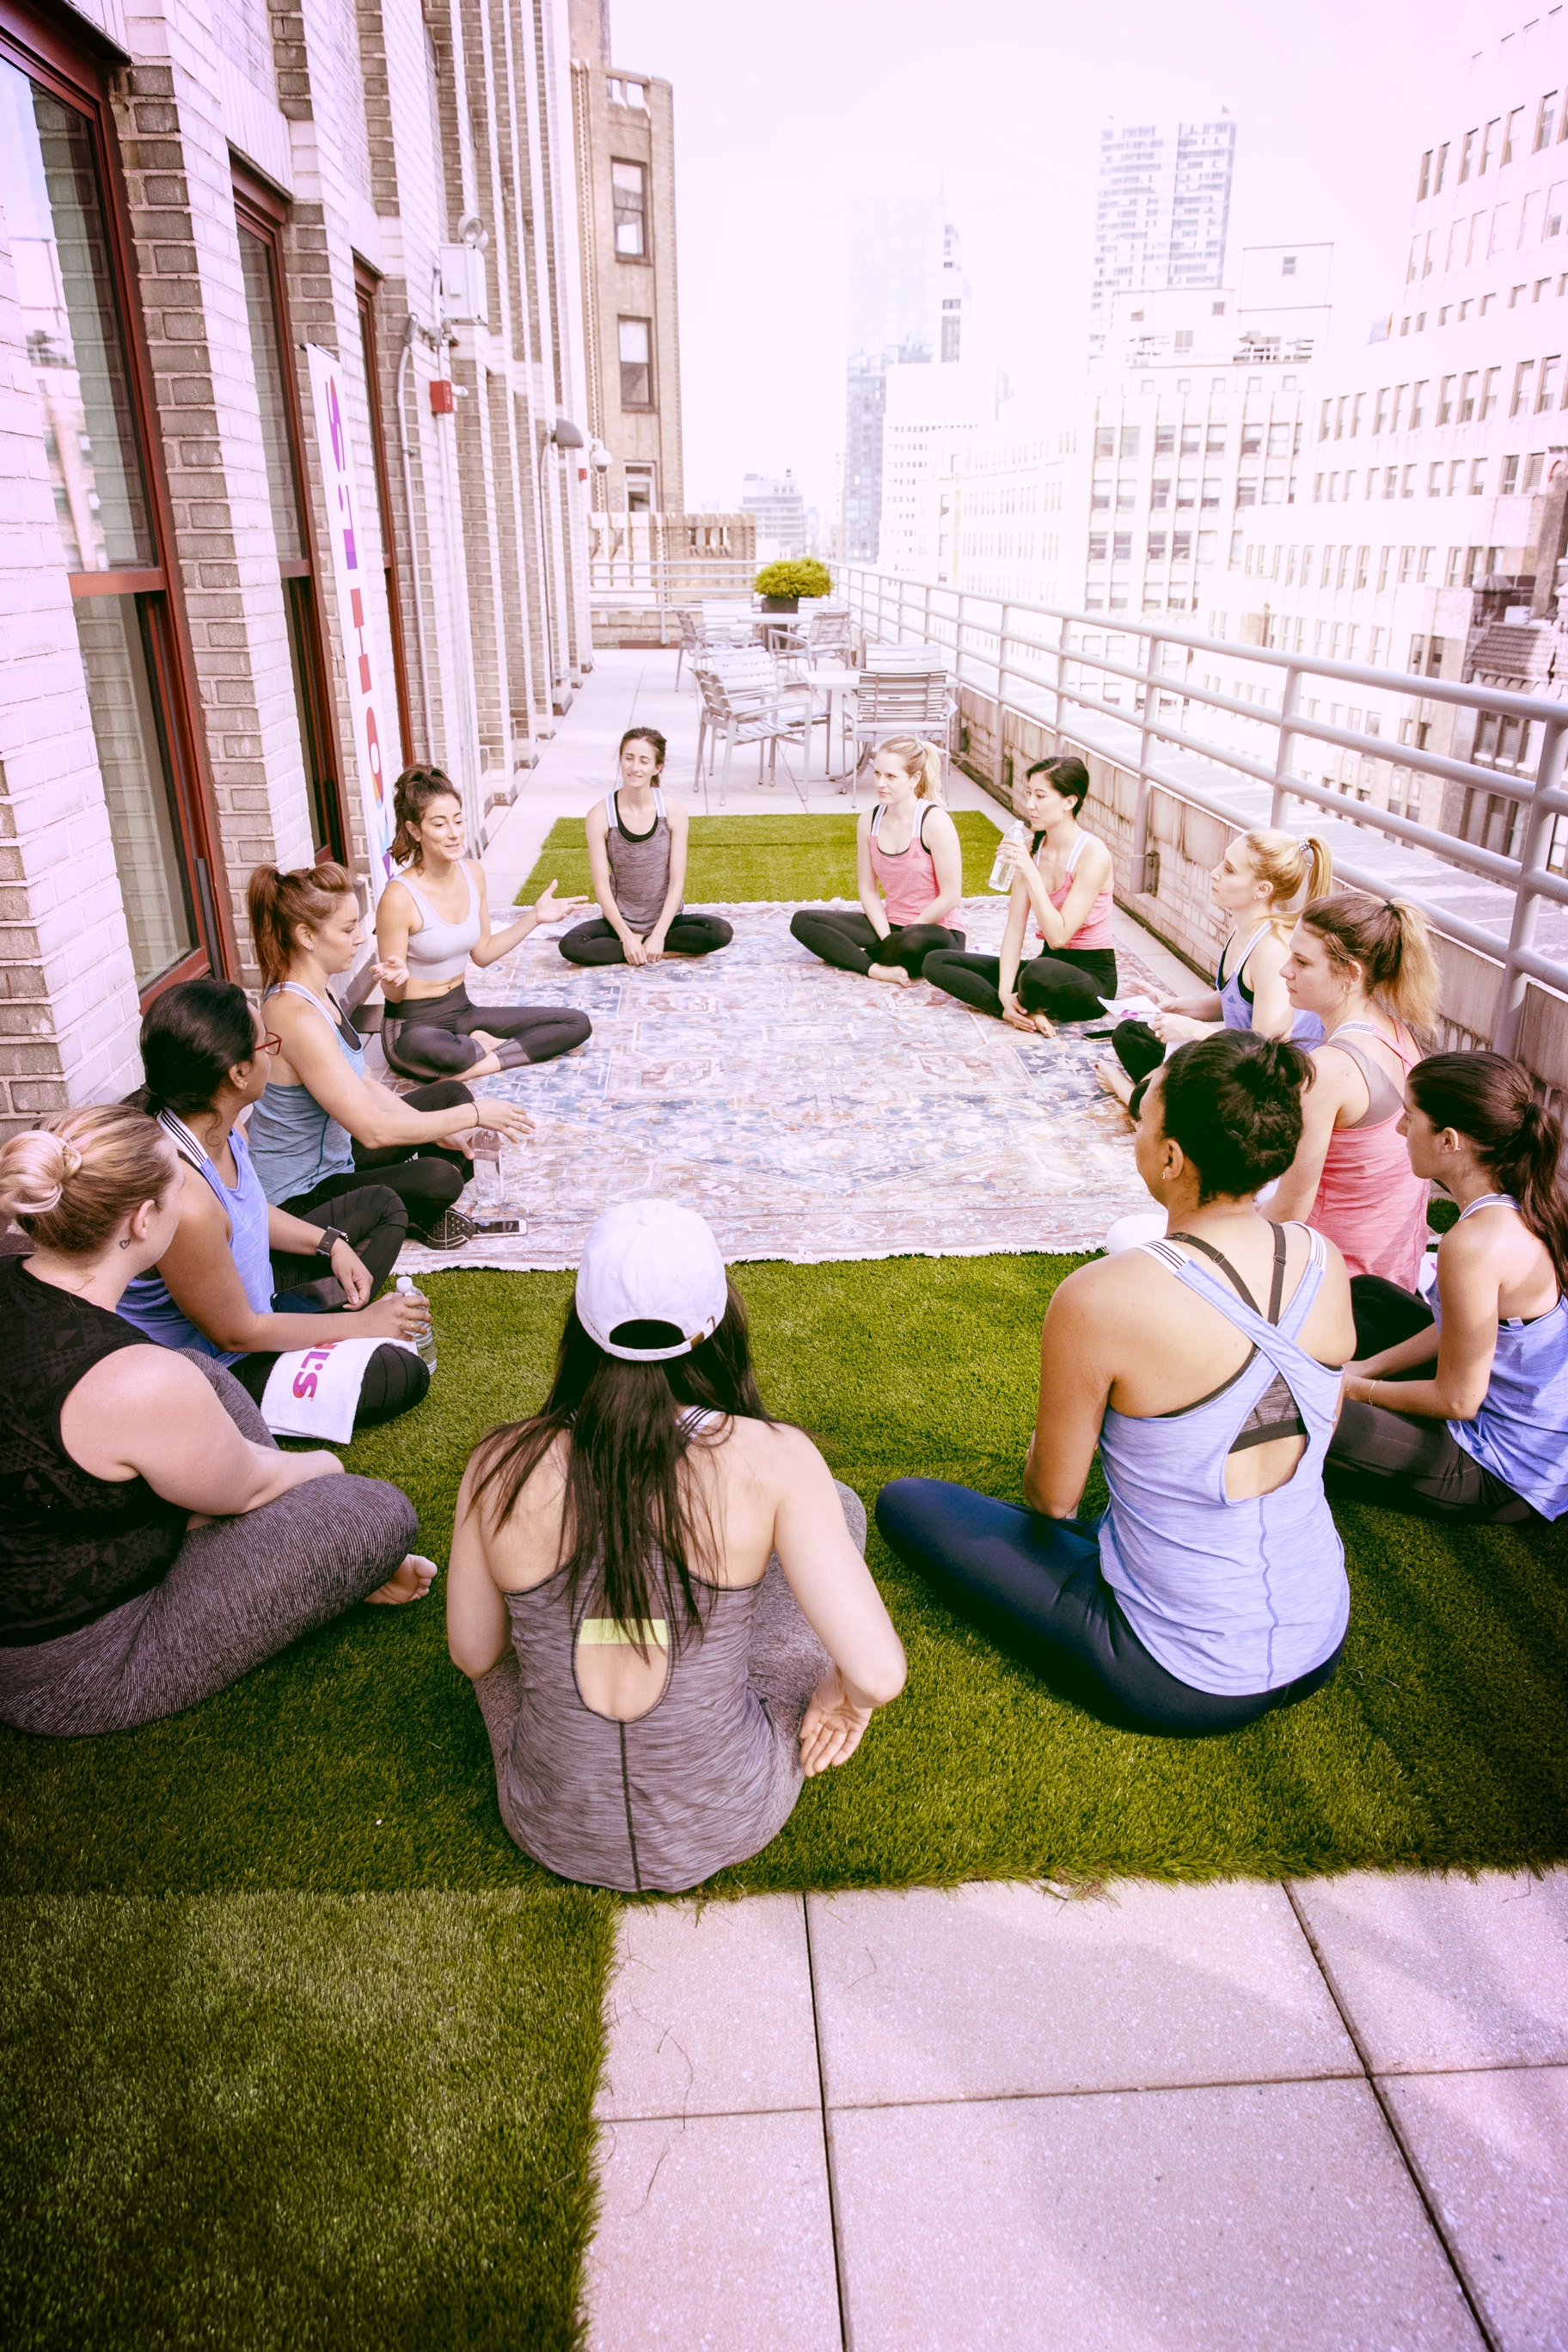 An amazing mediation circle followed our workout.